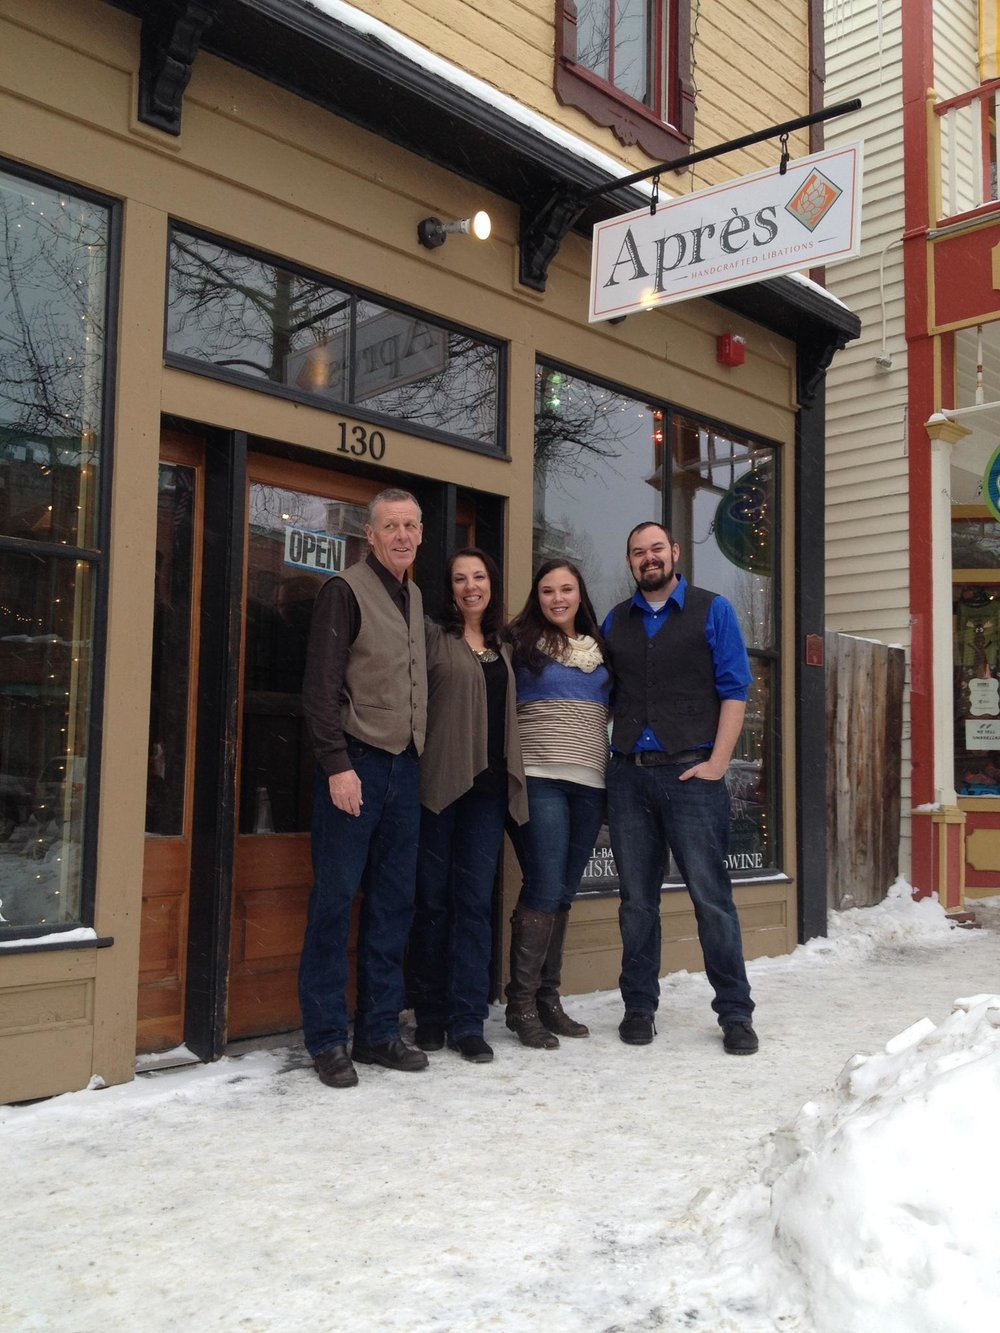 Après Founders from left to right: Bill, Momma Donna, Lauren, & Kyle